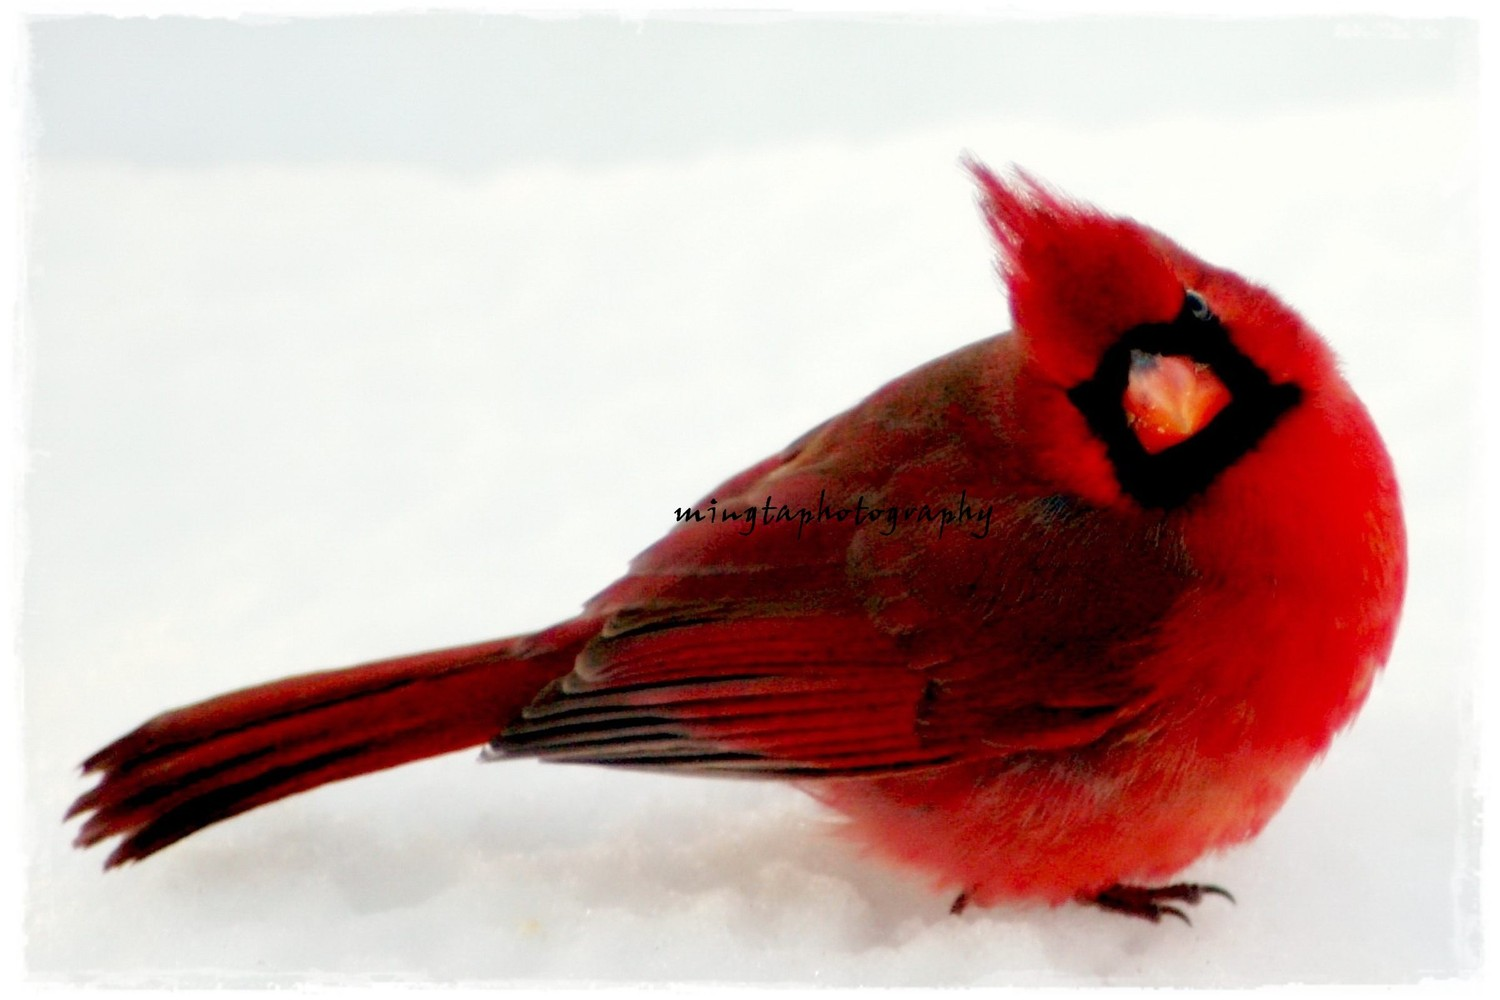 red bird in snow wallpaper wallpapersafari